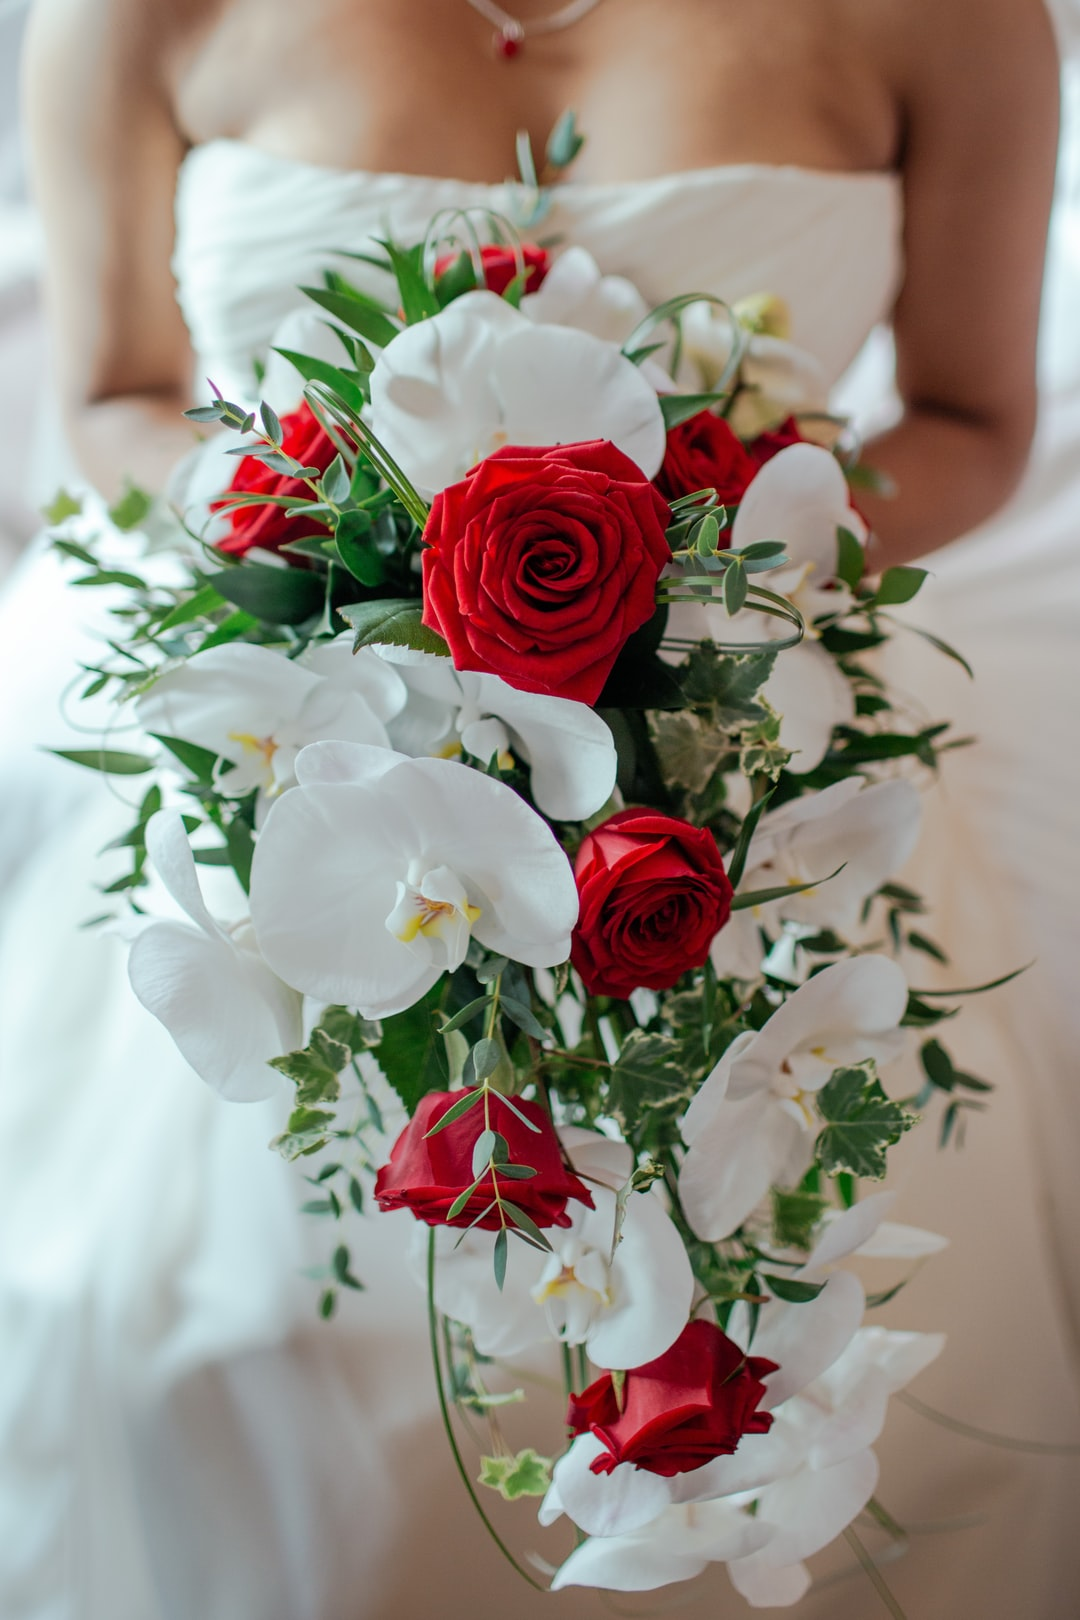 Stunning red and white bouquet